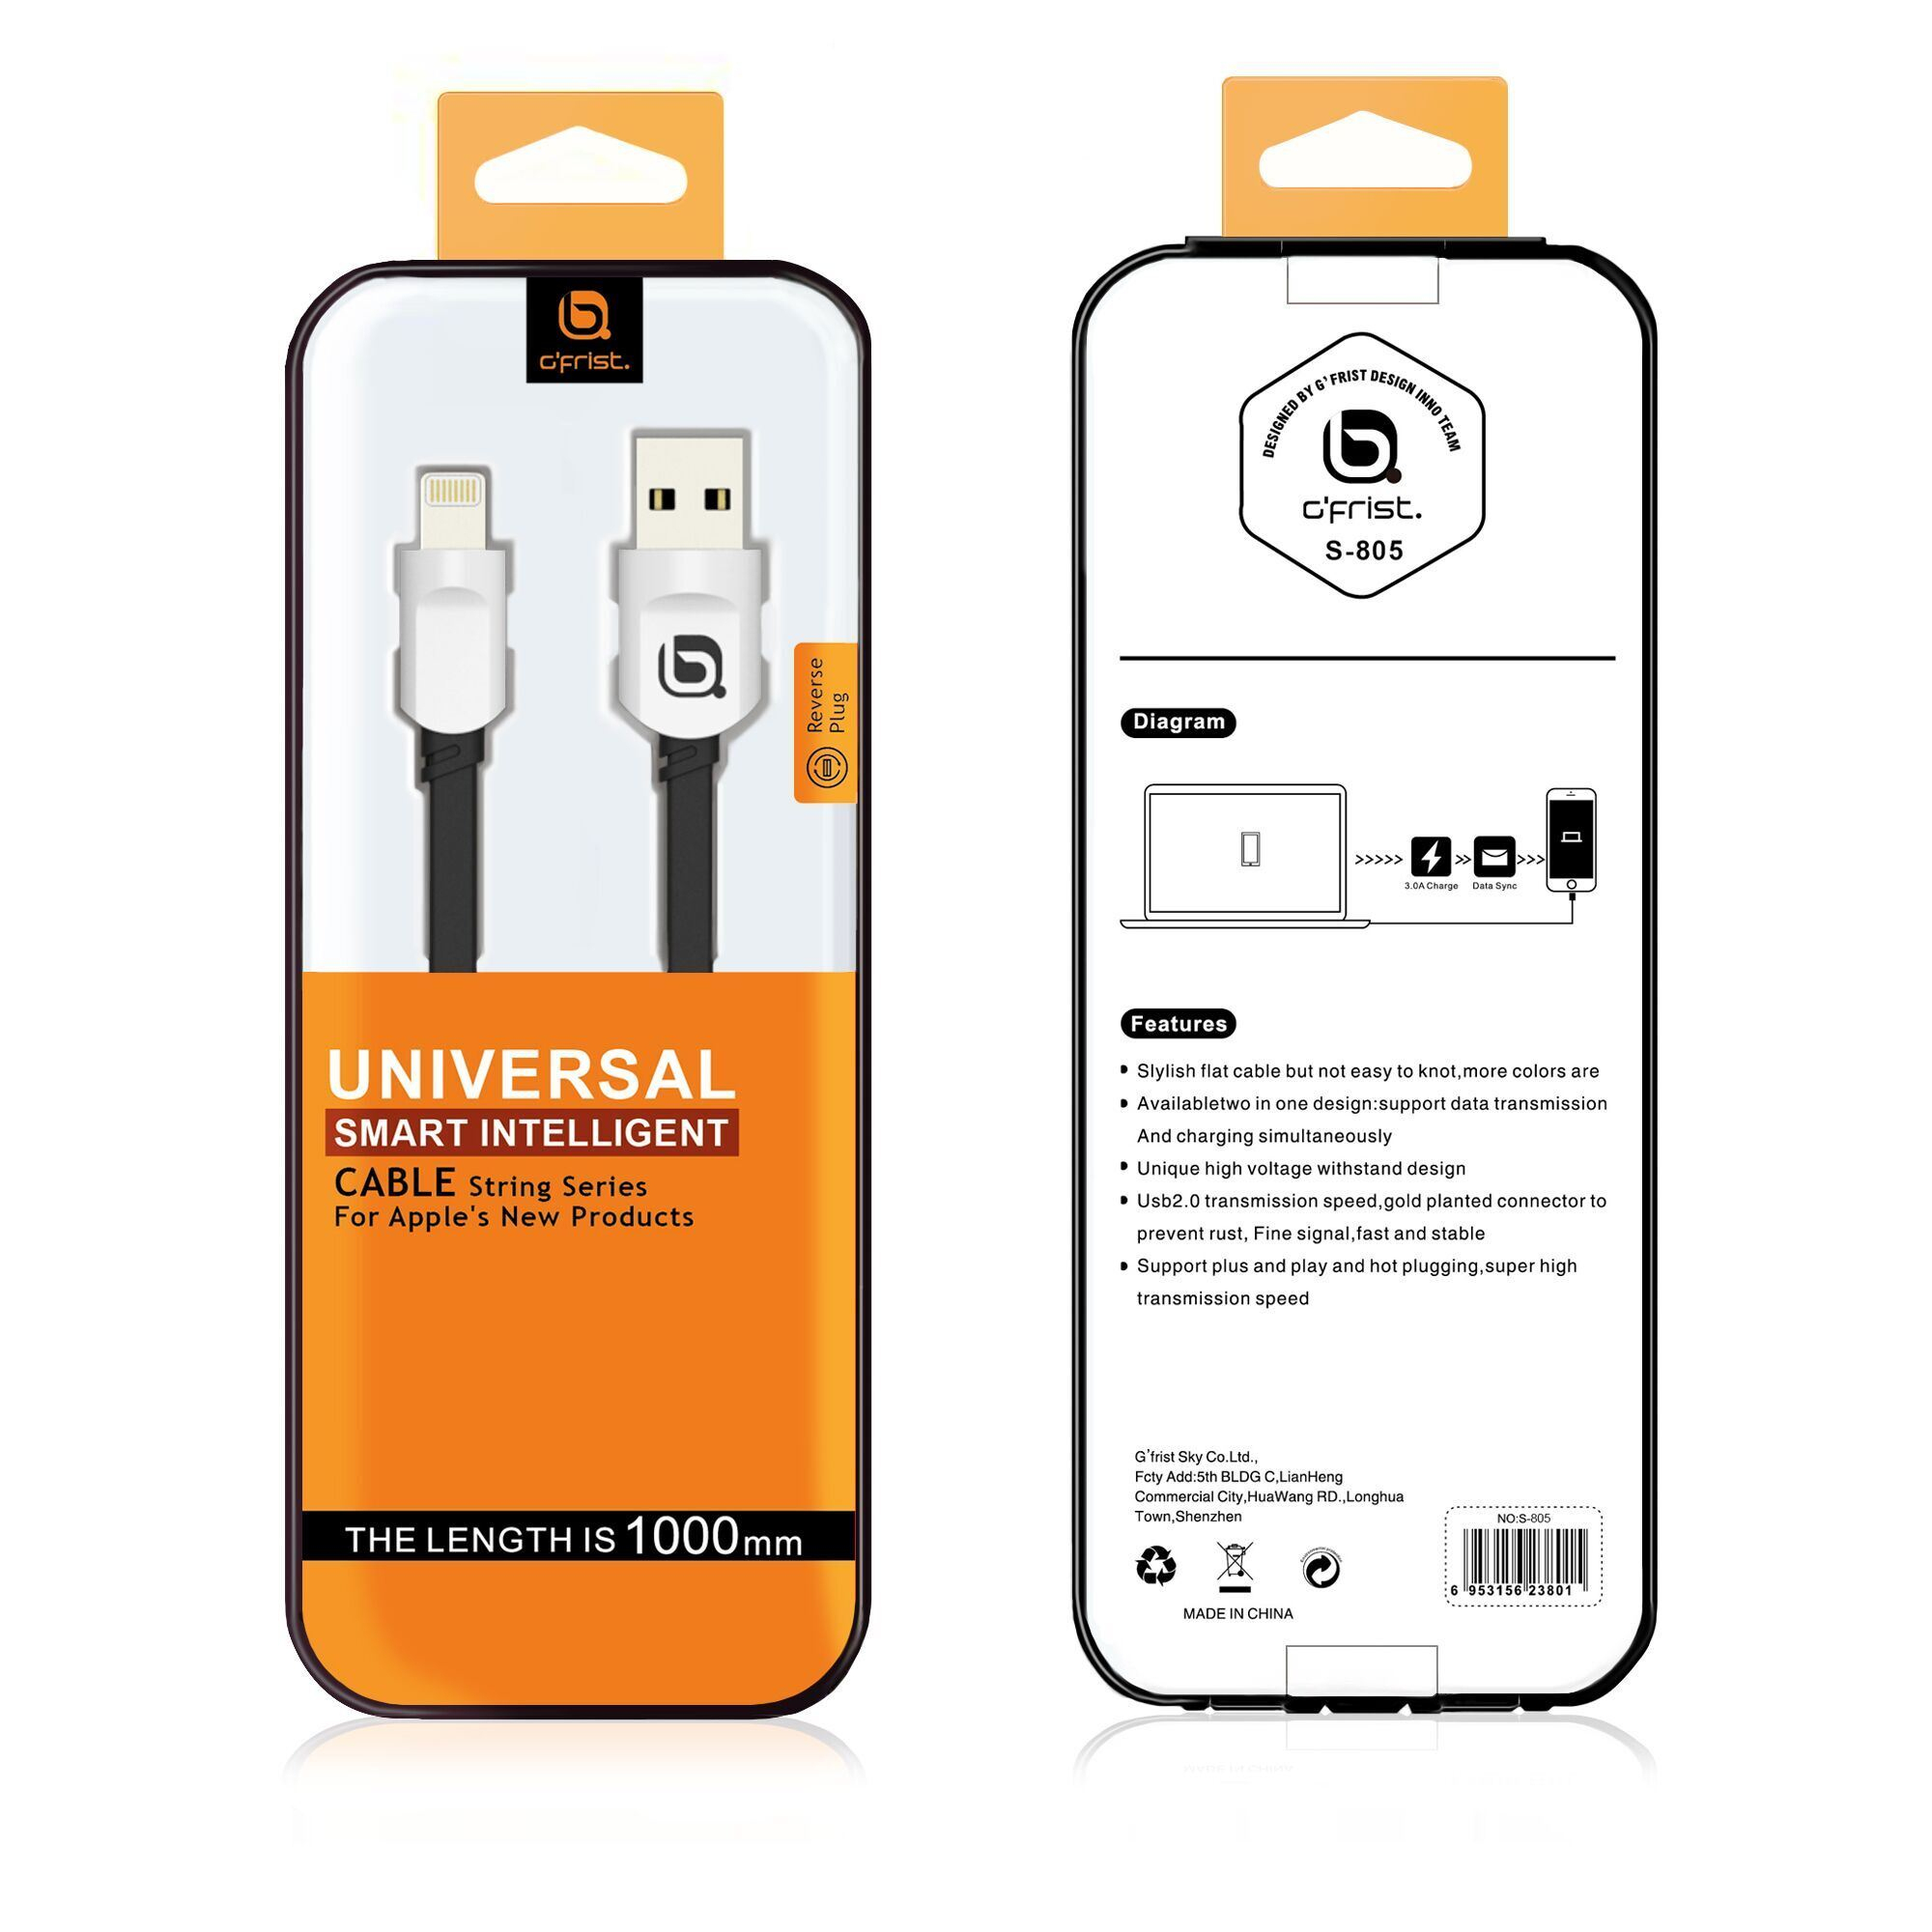 Ipod Iphone 5 Charger Wiring Diagram   Wiring Diagram - Iphone 5 Usb Charger Wiring Diagram